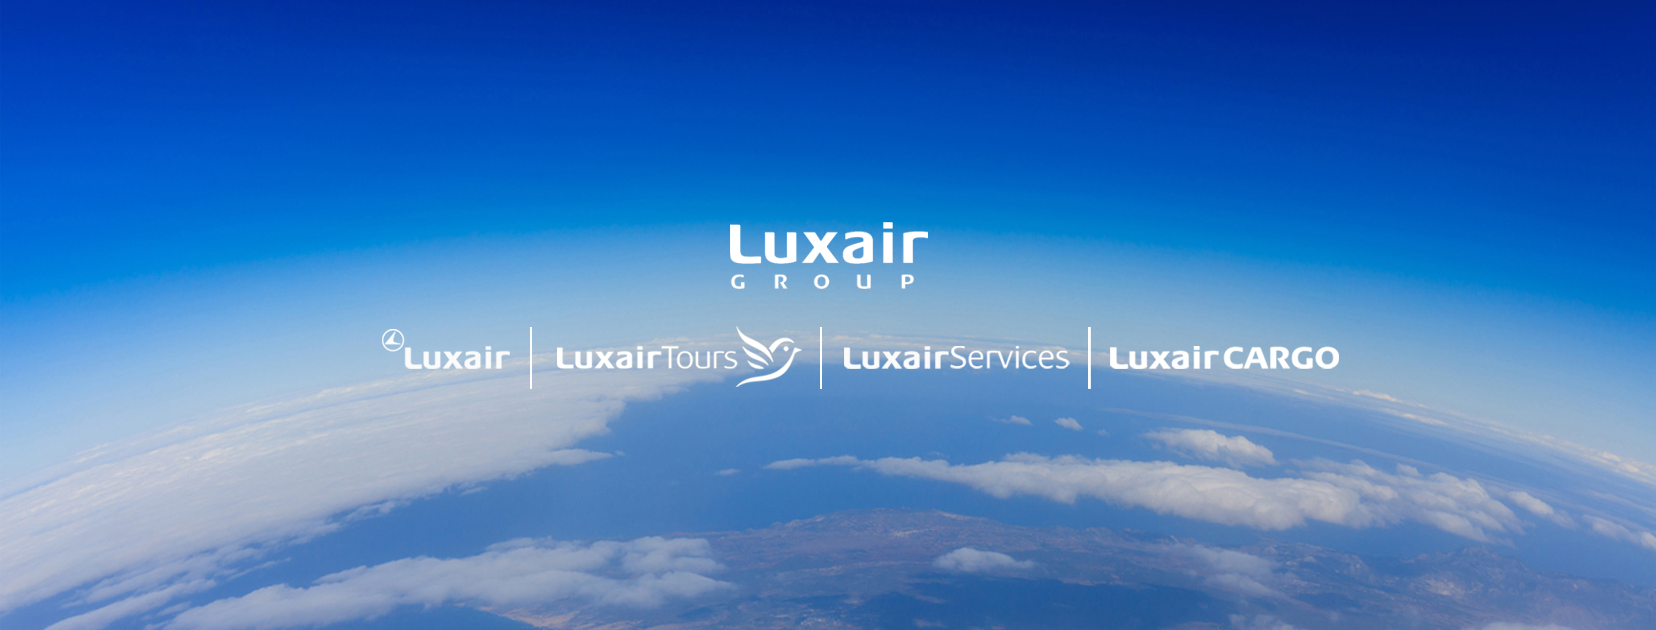 LuxairGroup_Cover_FB_1656x630